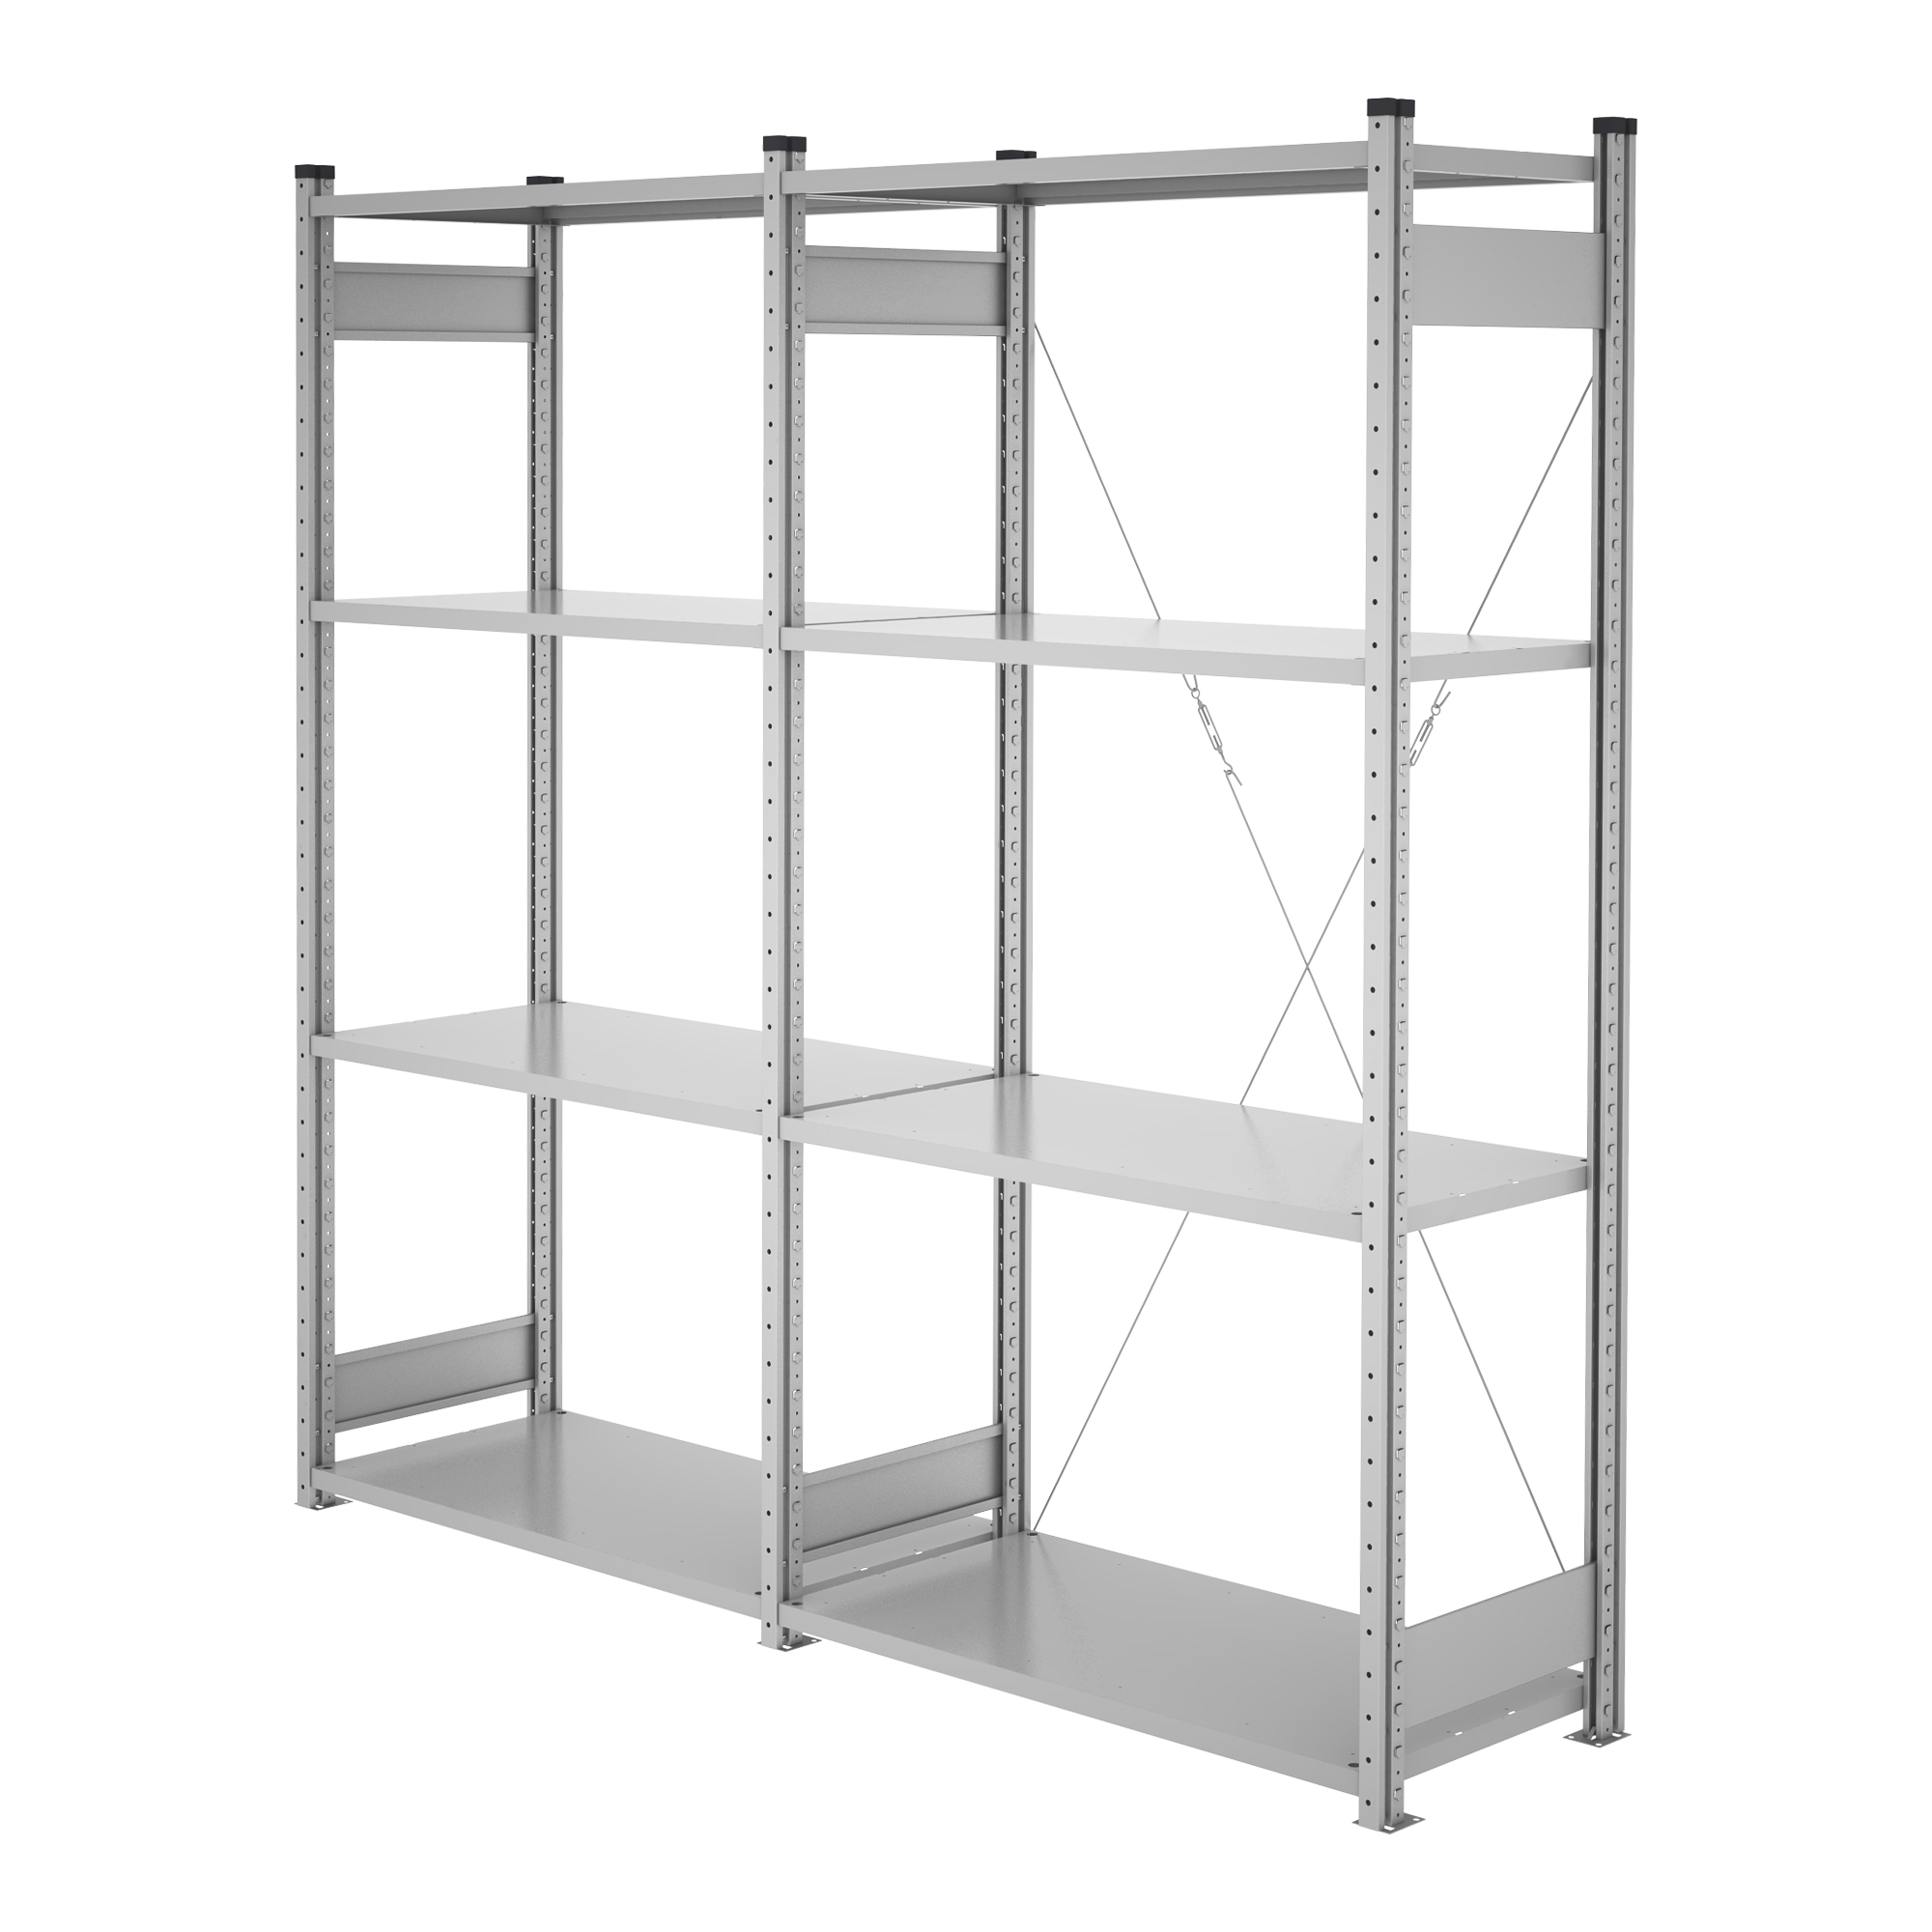 Type strong shelf dd21c3fb5276a157bc66276c3b5d32fc2545a1aa90281356b077a0bded431be1